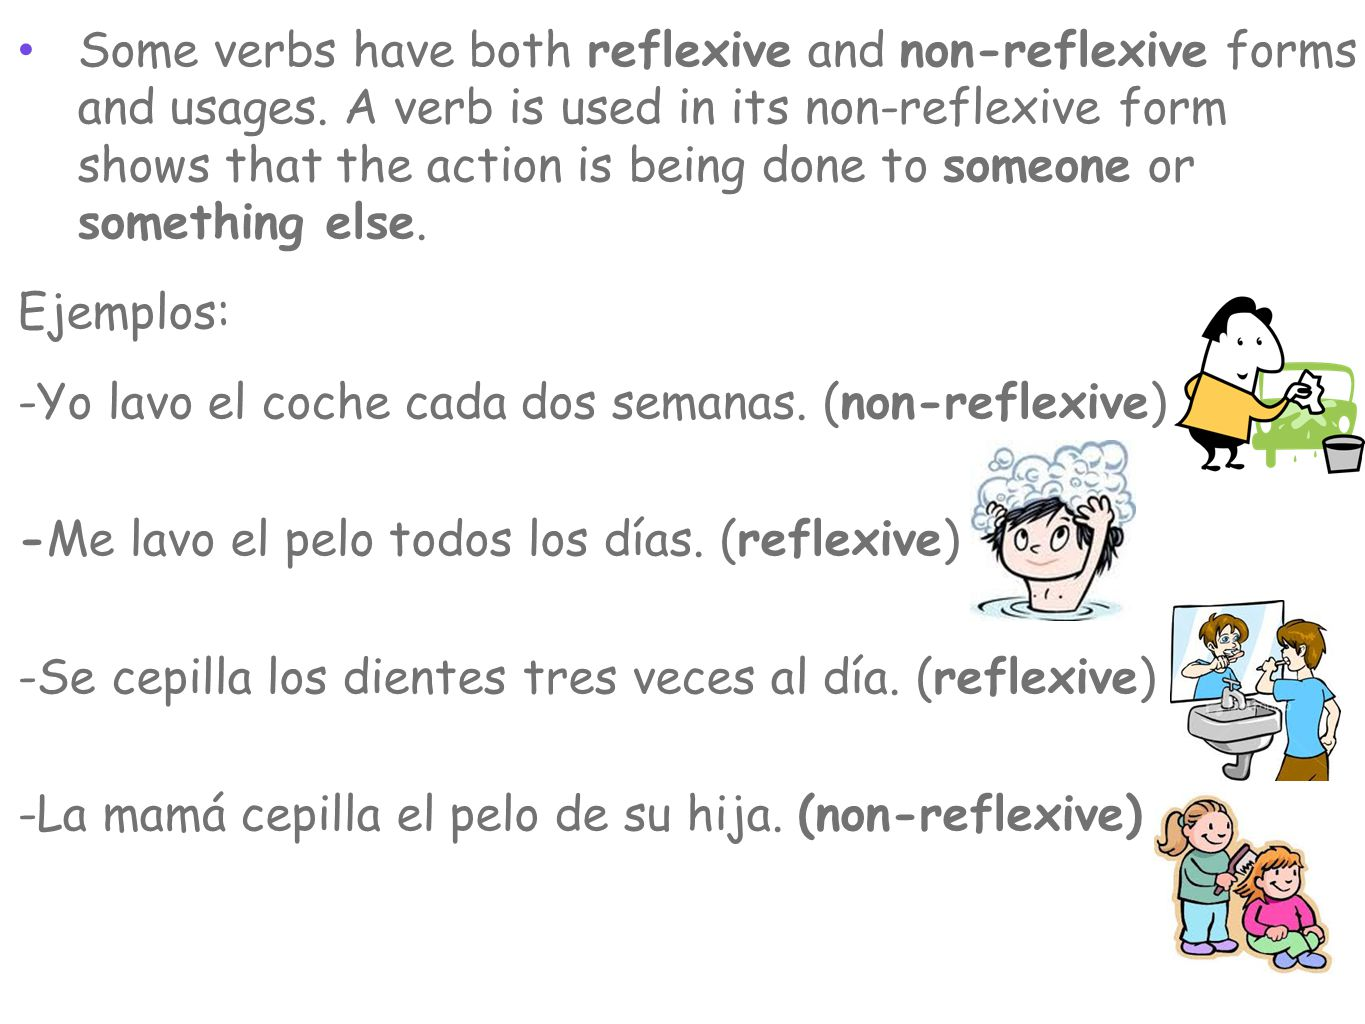 Some verbs have both reflexive and non-reflexive forms and usages